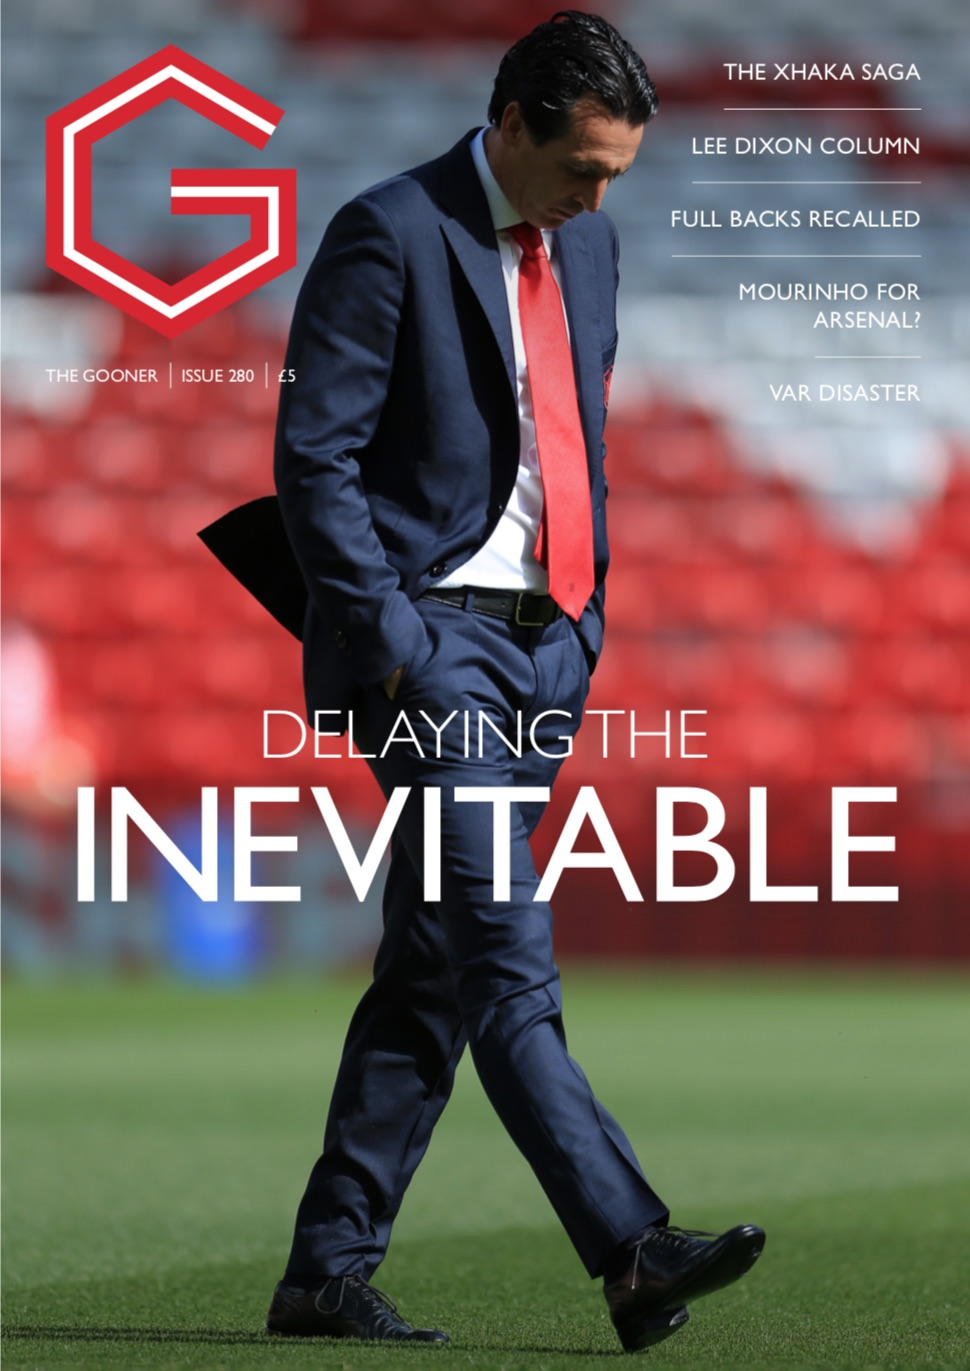 The Gooner Issue 280 (UK)